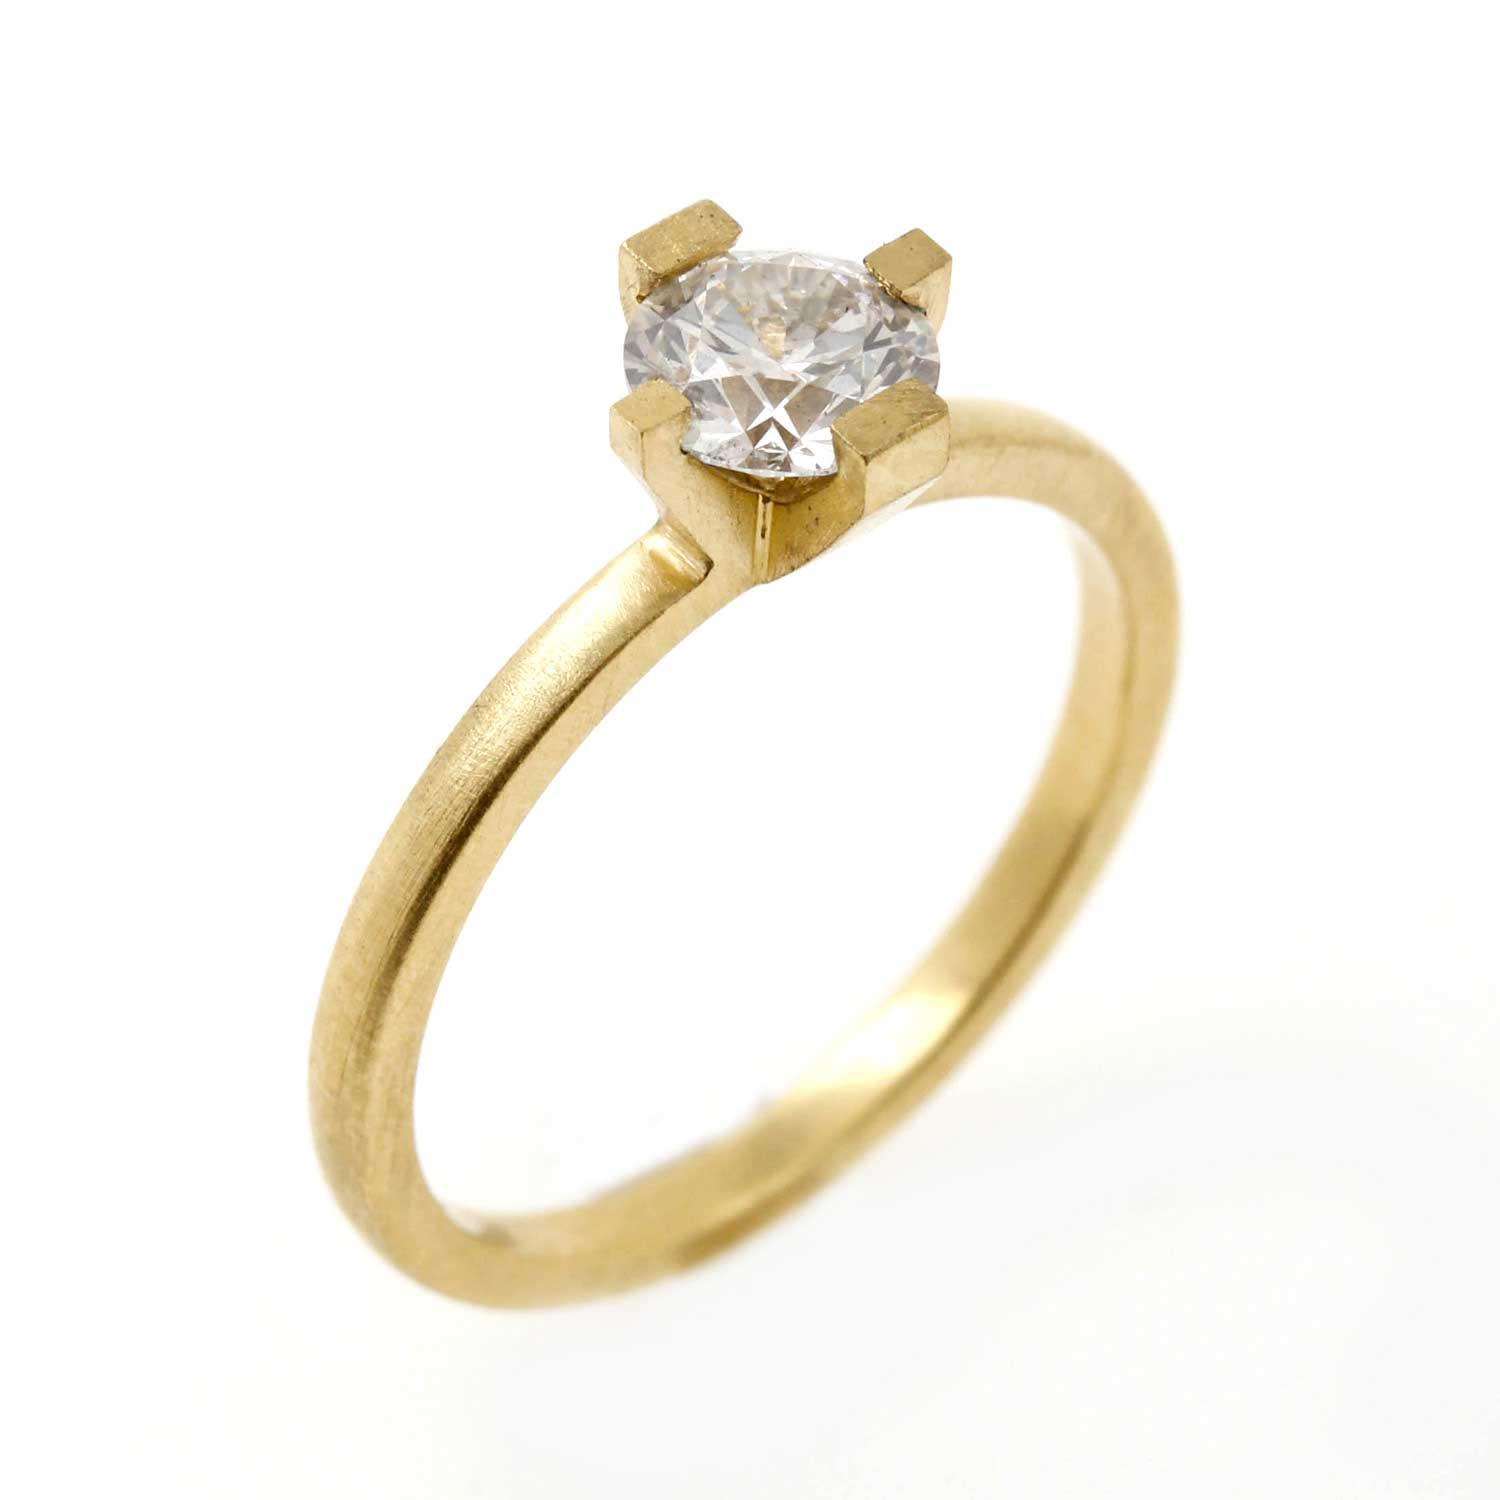 """Architectural Design - Architect Tom wanted me to create a Brutalist inspired engagement ring, with pared back, clean lines and a matt finish to reflect the beauty of the diamond.""""I would highly recommend Lee to anyone looking for a beautiful and bespoke engagement ring."""" - Tom Saunders"""